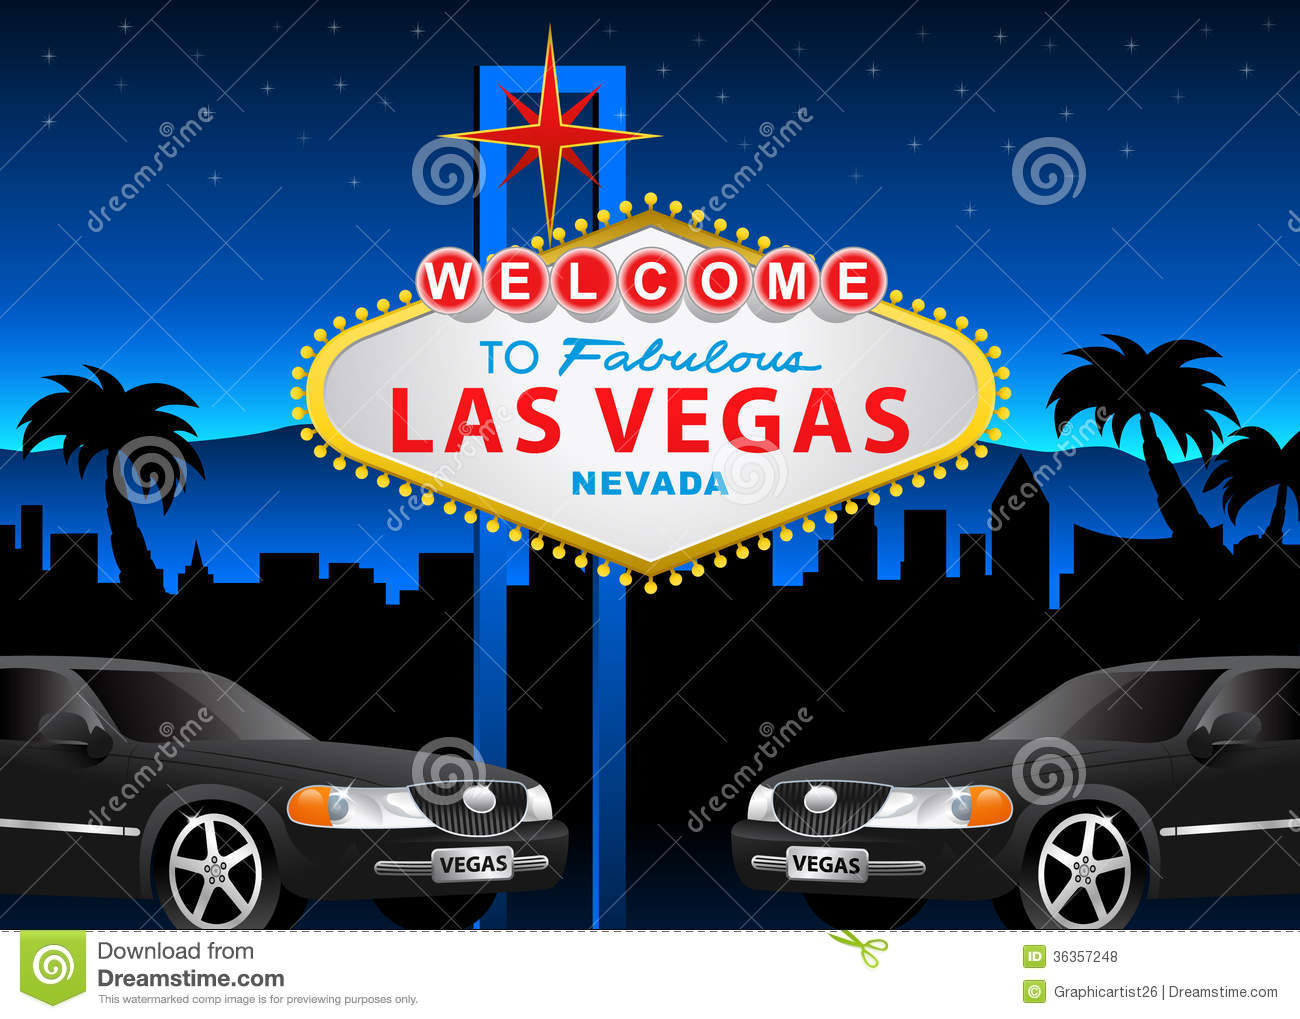 Illustration of Las Vegas. EPS 10 file and Hi-Res jpg included.